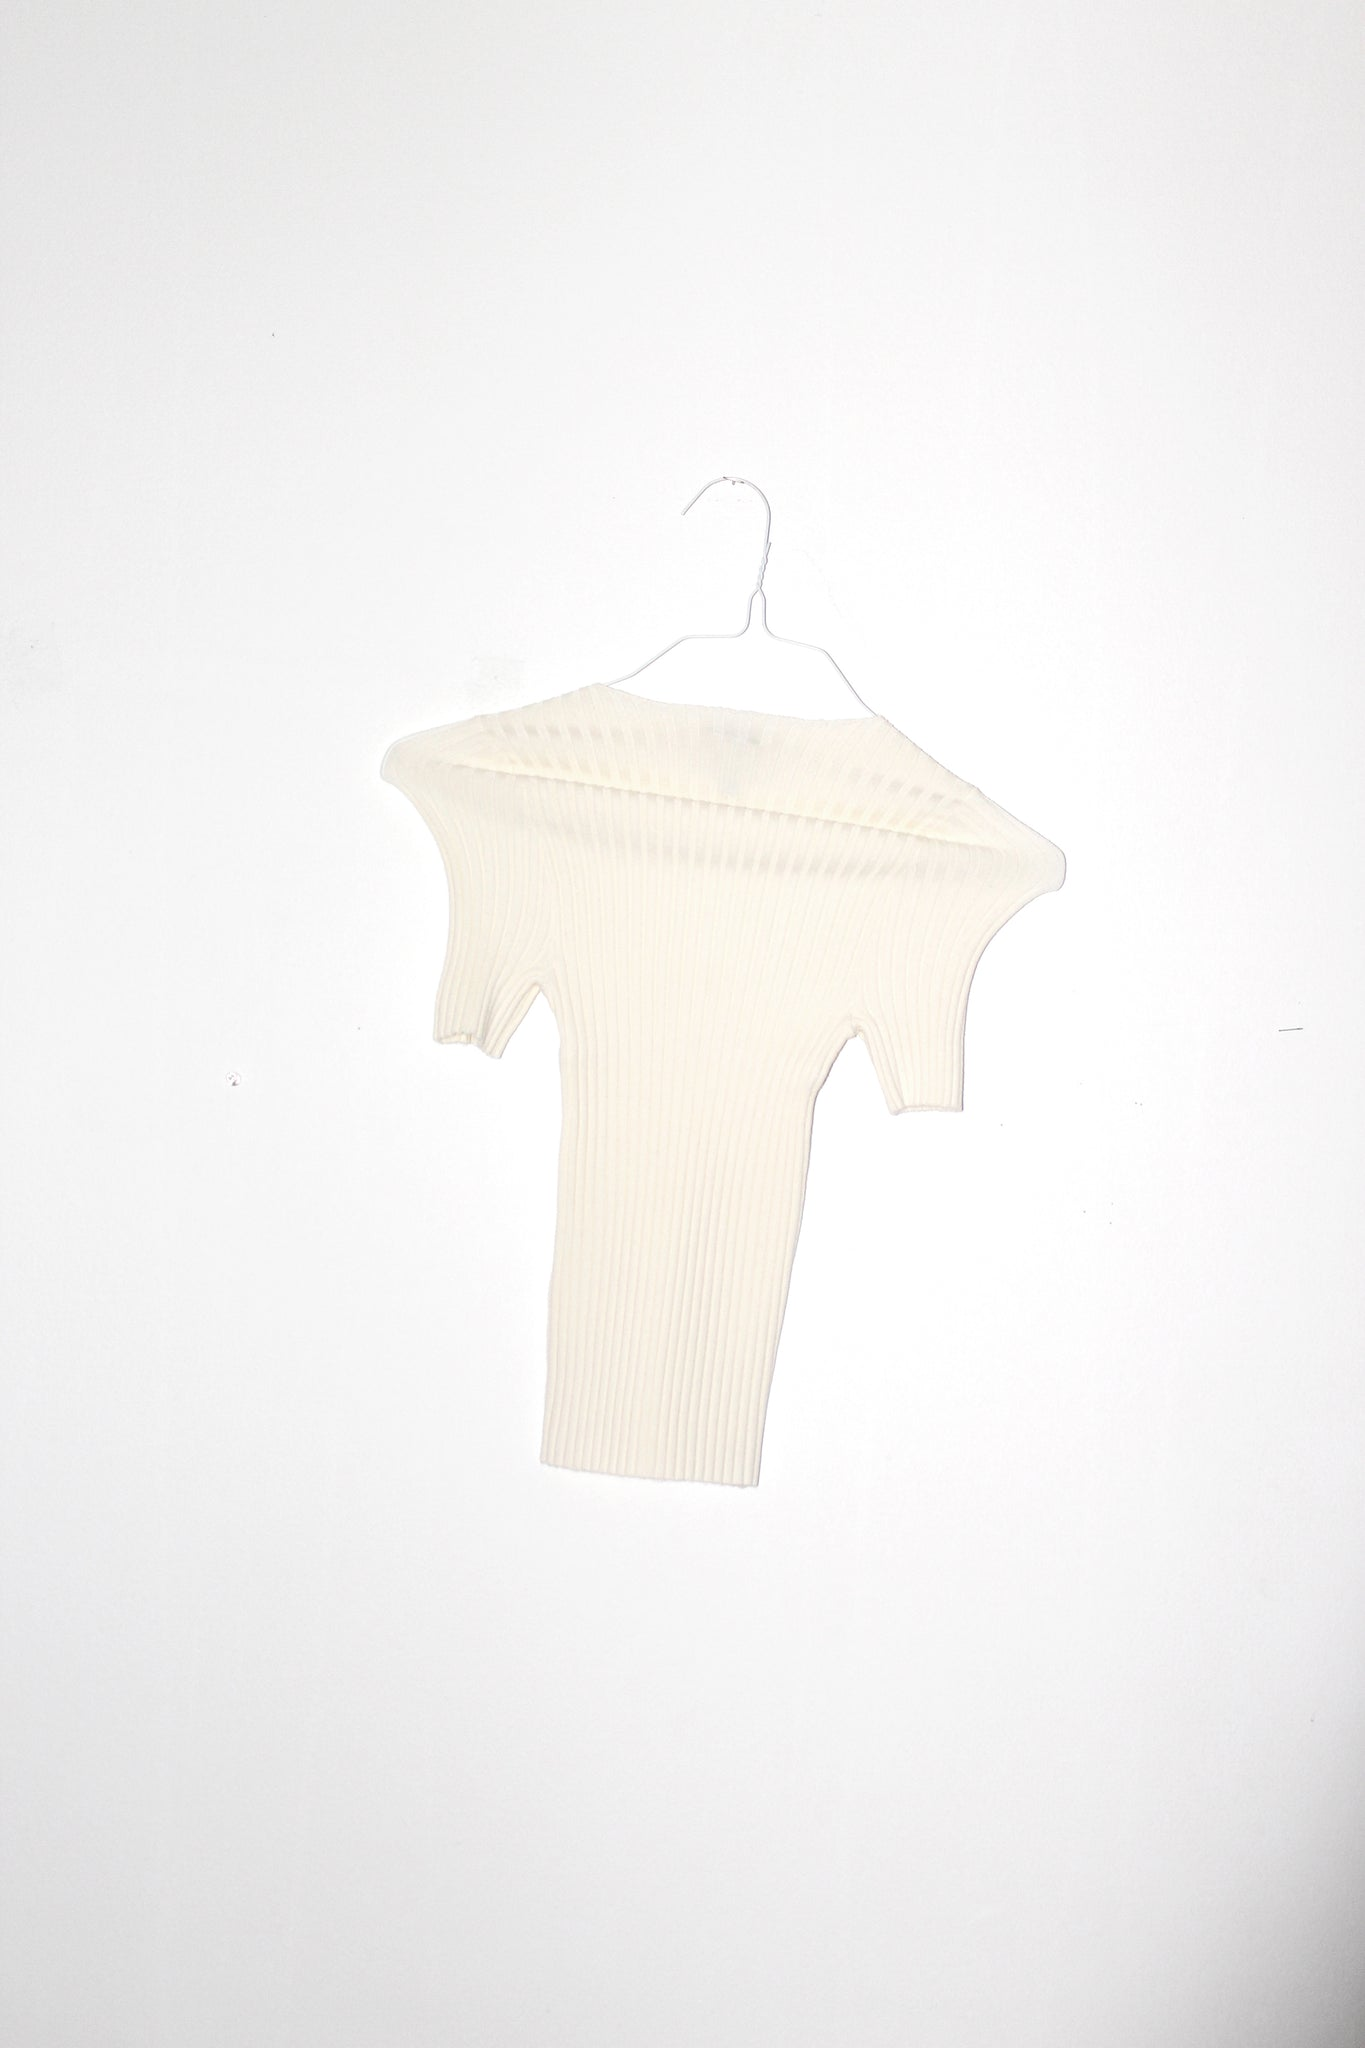 NONNA Jewel Tee in Ivory